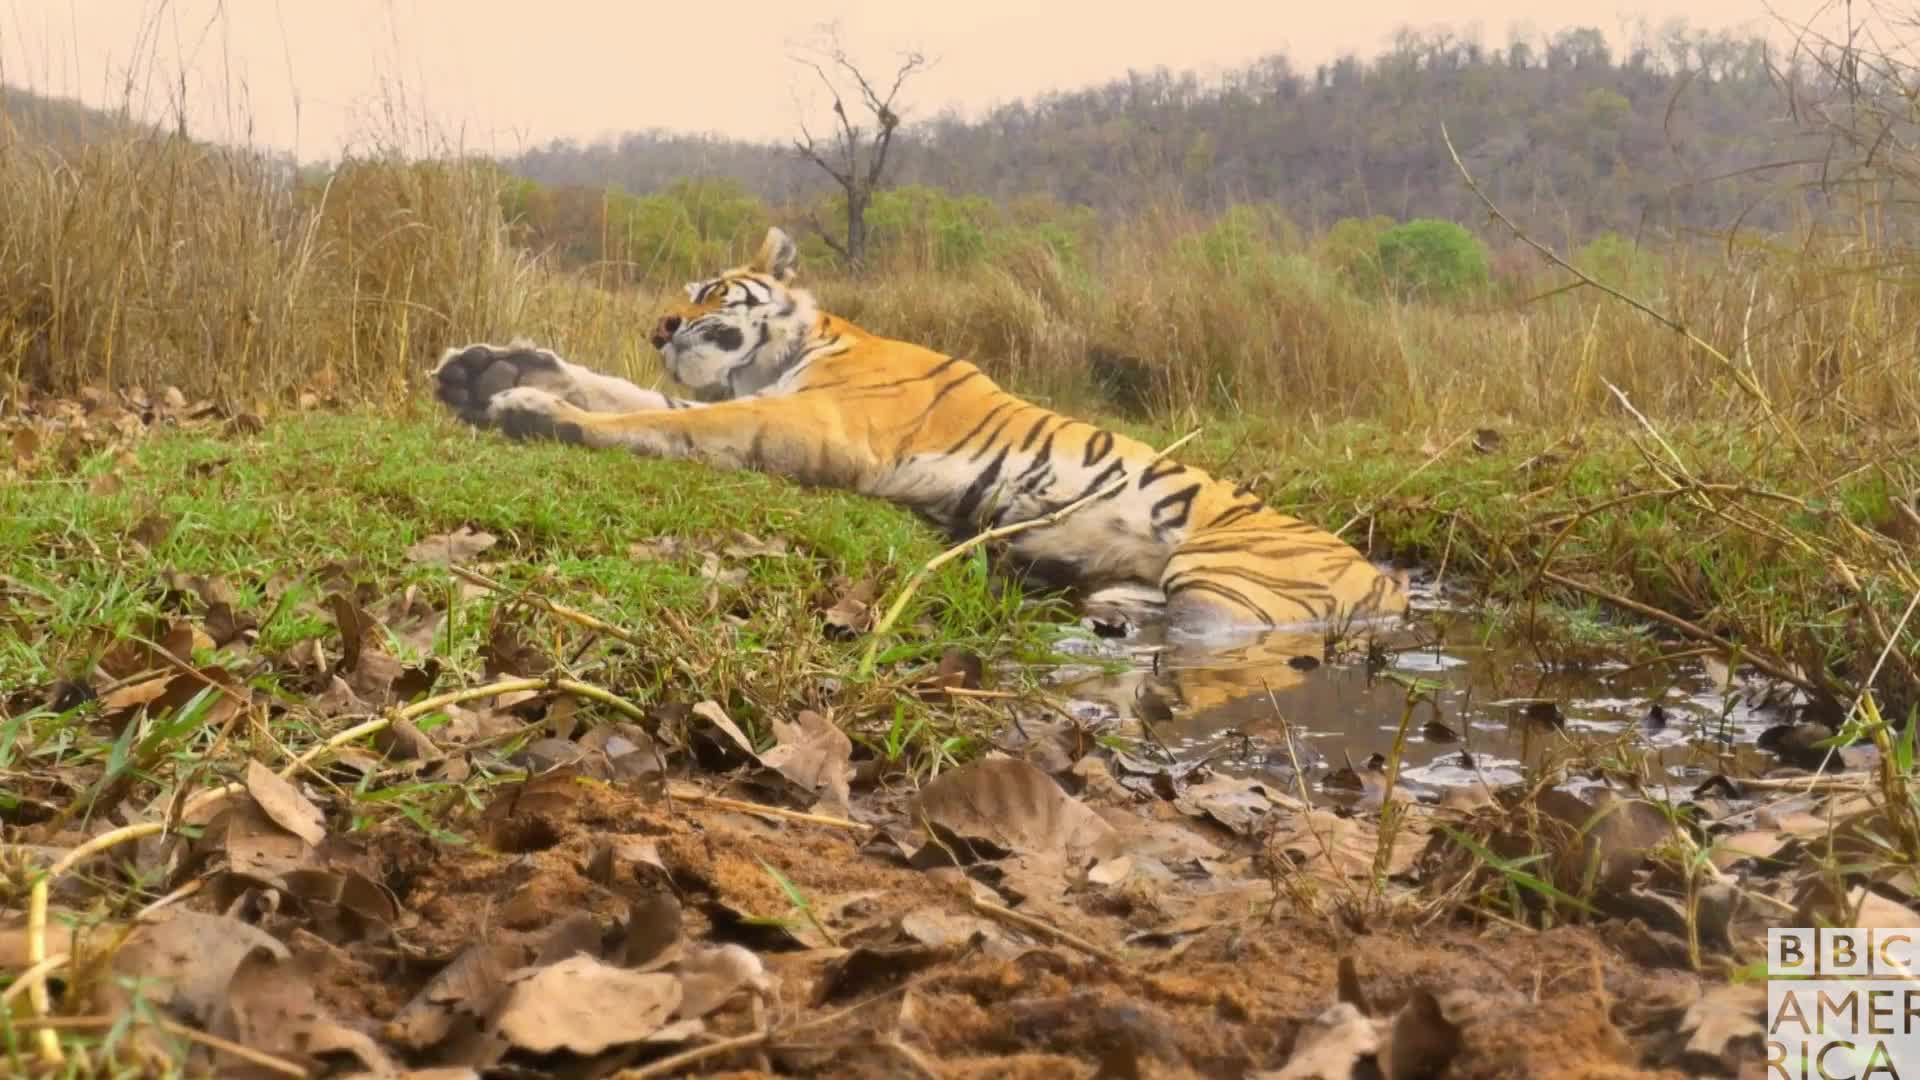 animal, animals, bbc america, bbc america dynasties, bbc america: dynasties, dynasties, good morning, sleep, sleepy, tiger, tigers, tired, wake up, zzz, Dynasties Raj Bhera Tiger Wakes Up GIFs